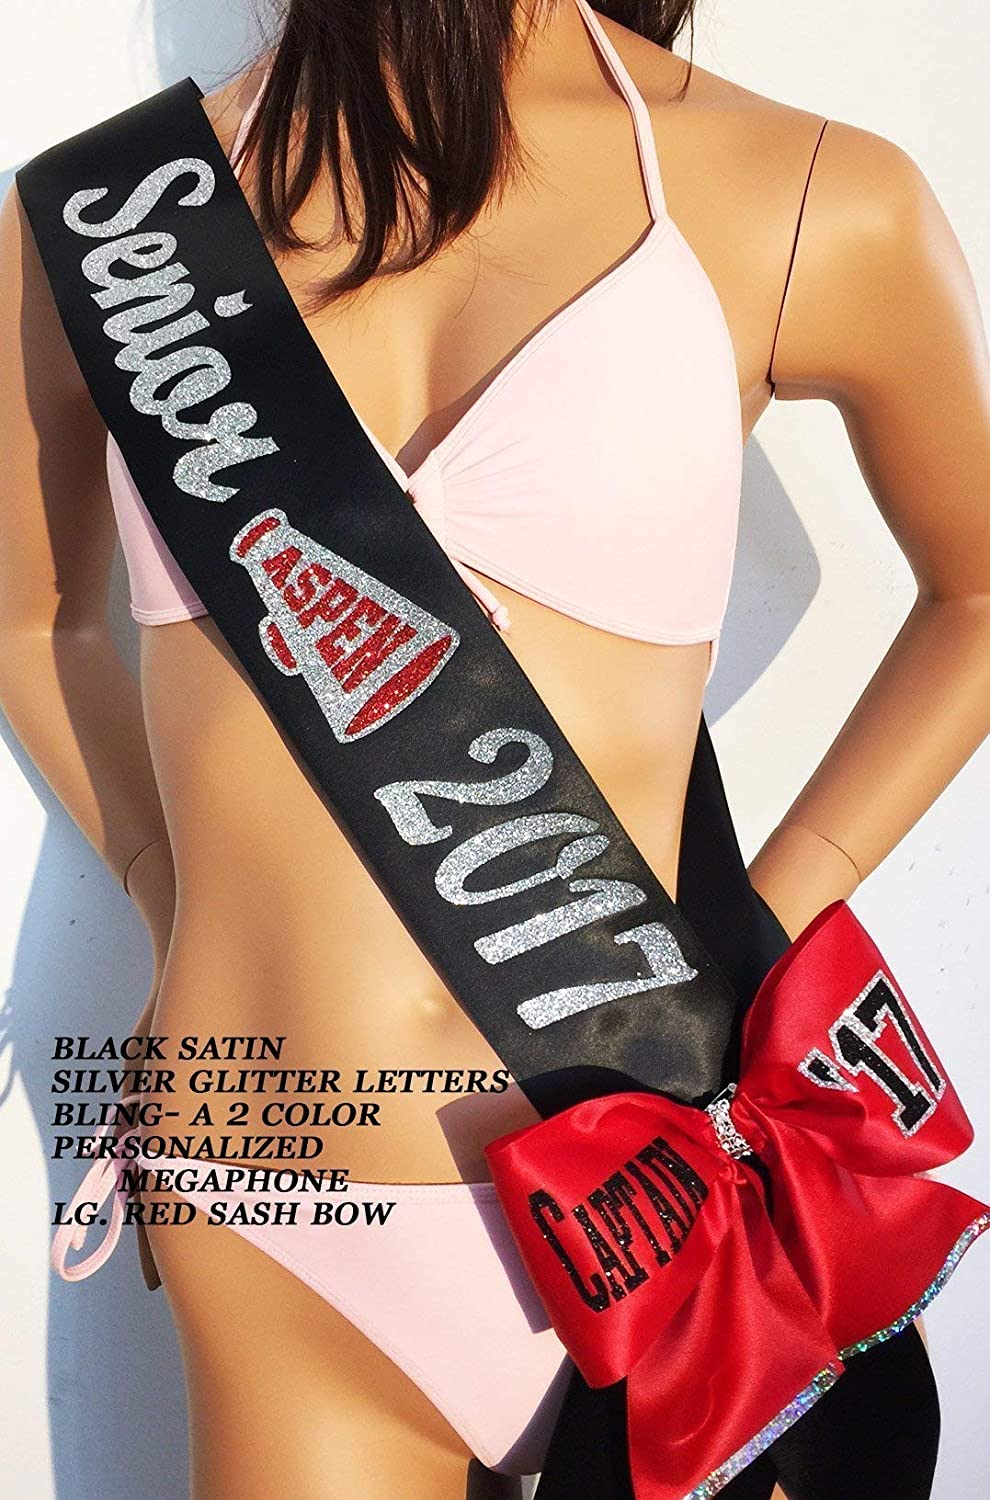 Senior '19, Senior Night Sash, Class of, Trim, Bling, Shoulder Zazzle and Bows avail. at an add'l cost. By SashANation Senior '19